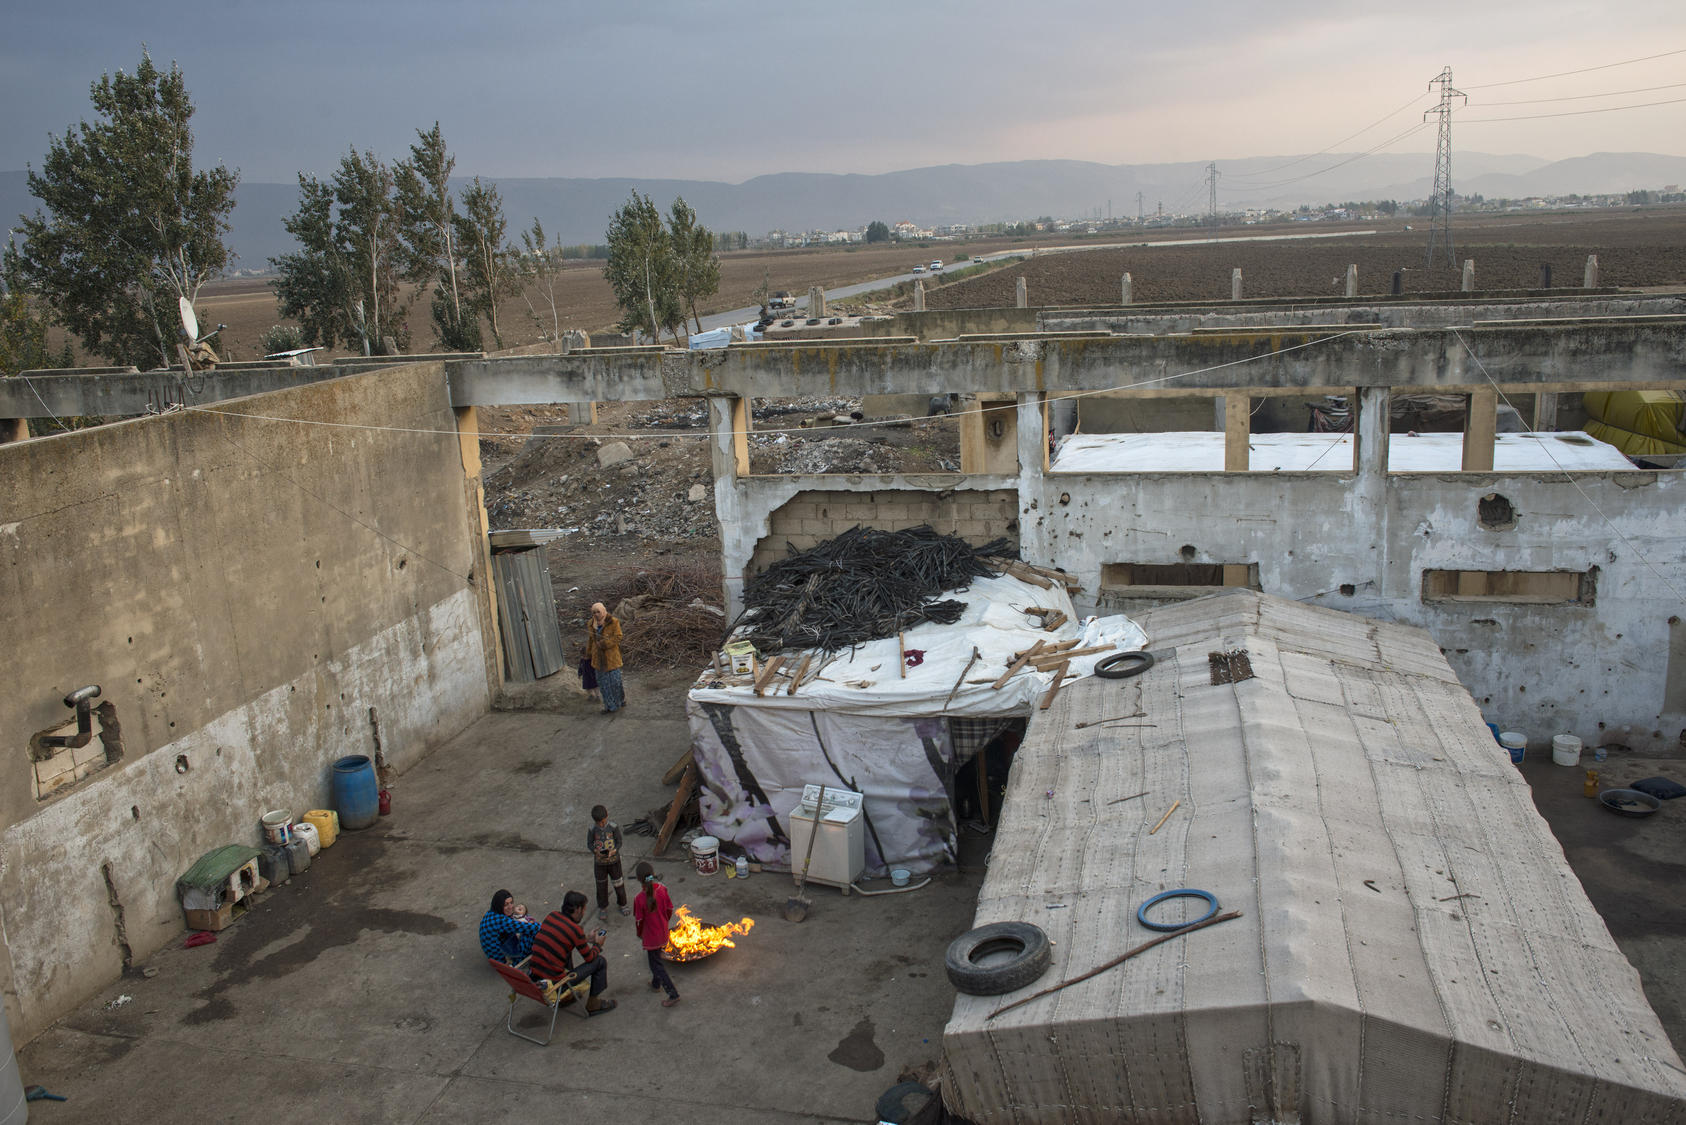 Syrian refugees live in a factory bombed by the Israeli military in 1982 near Faida, Lebanon. Photo Courtesy of The New York Times/ Lynsey Addario